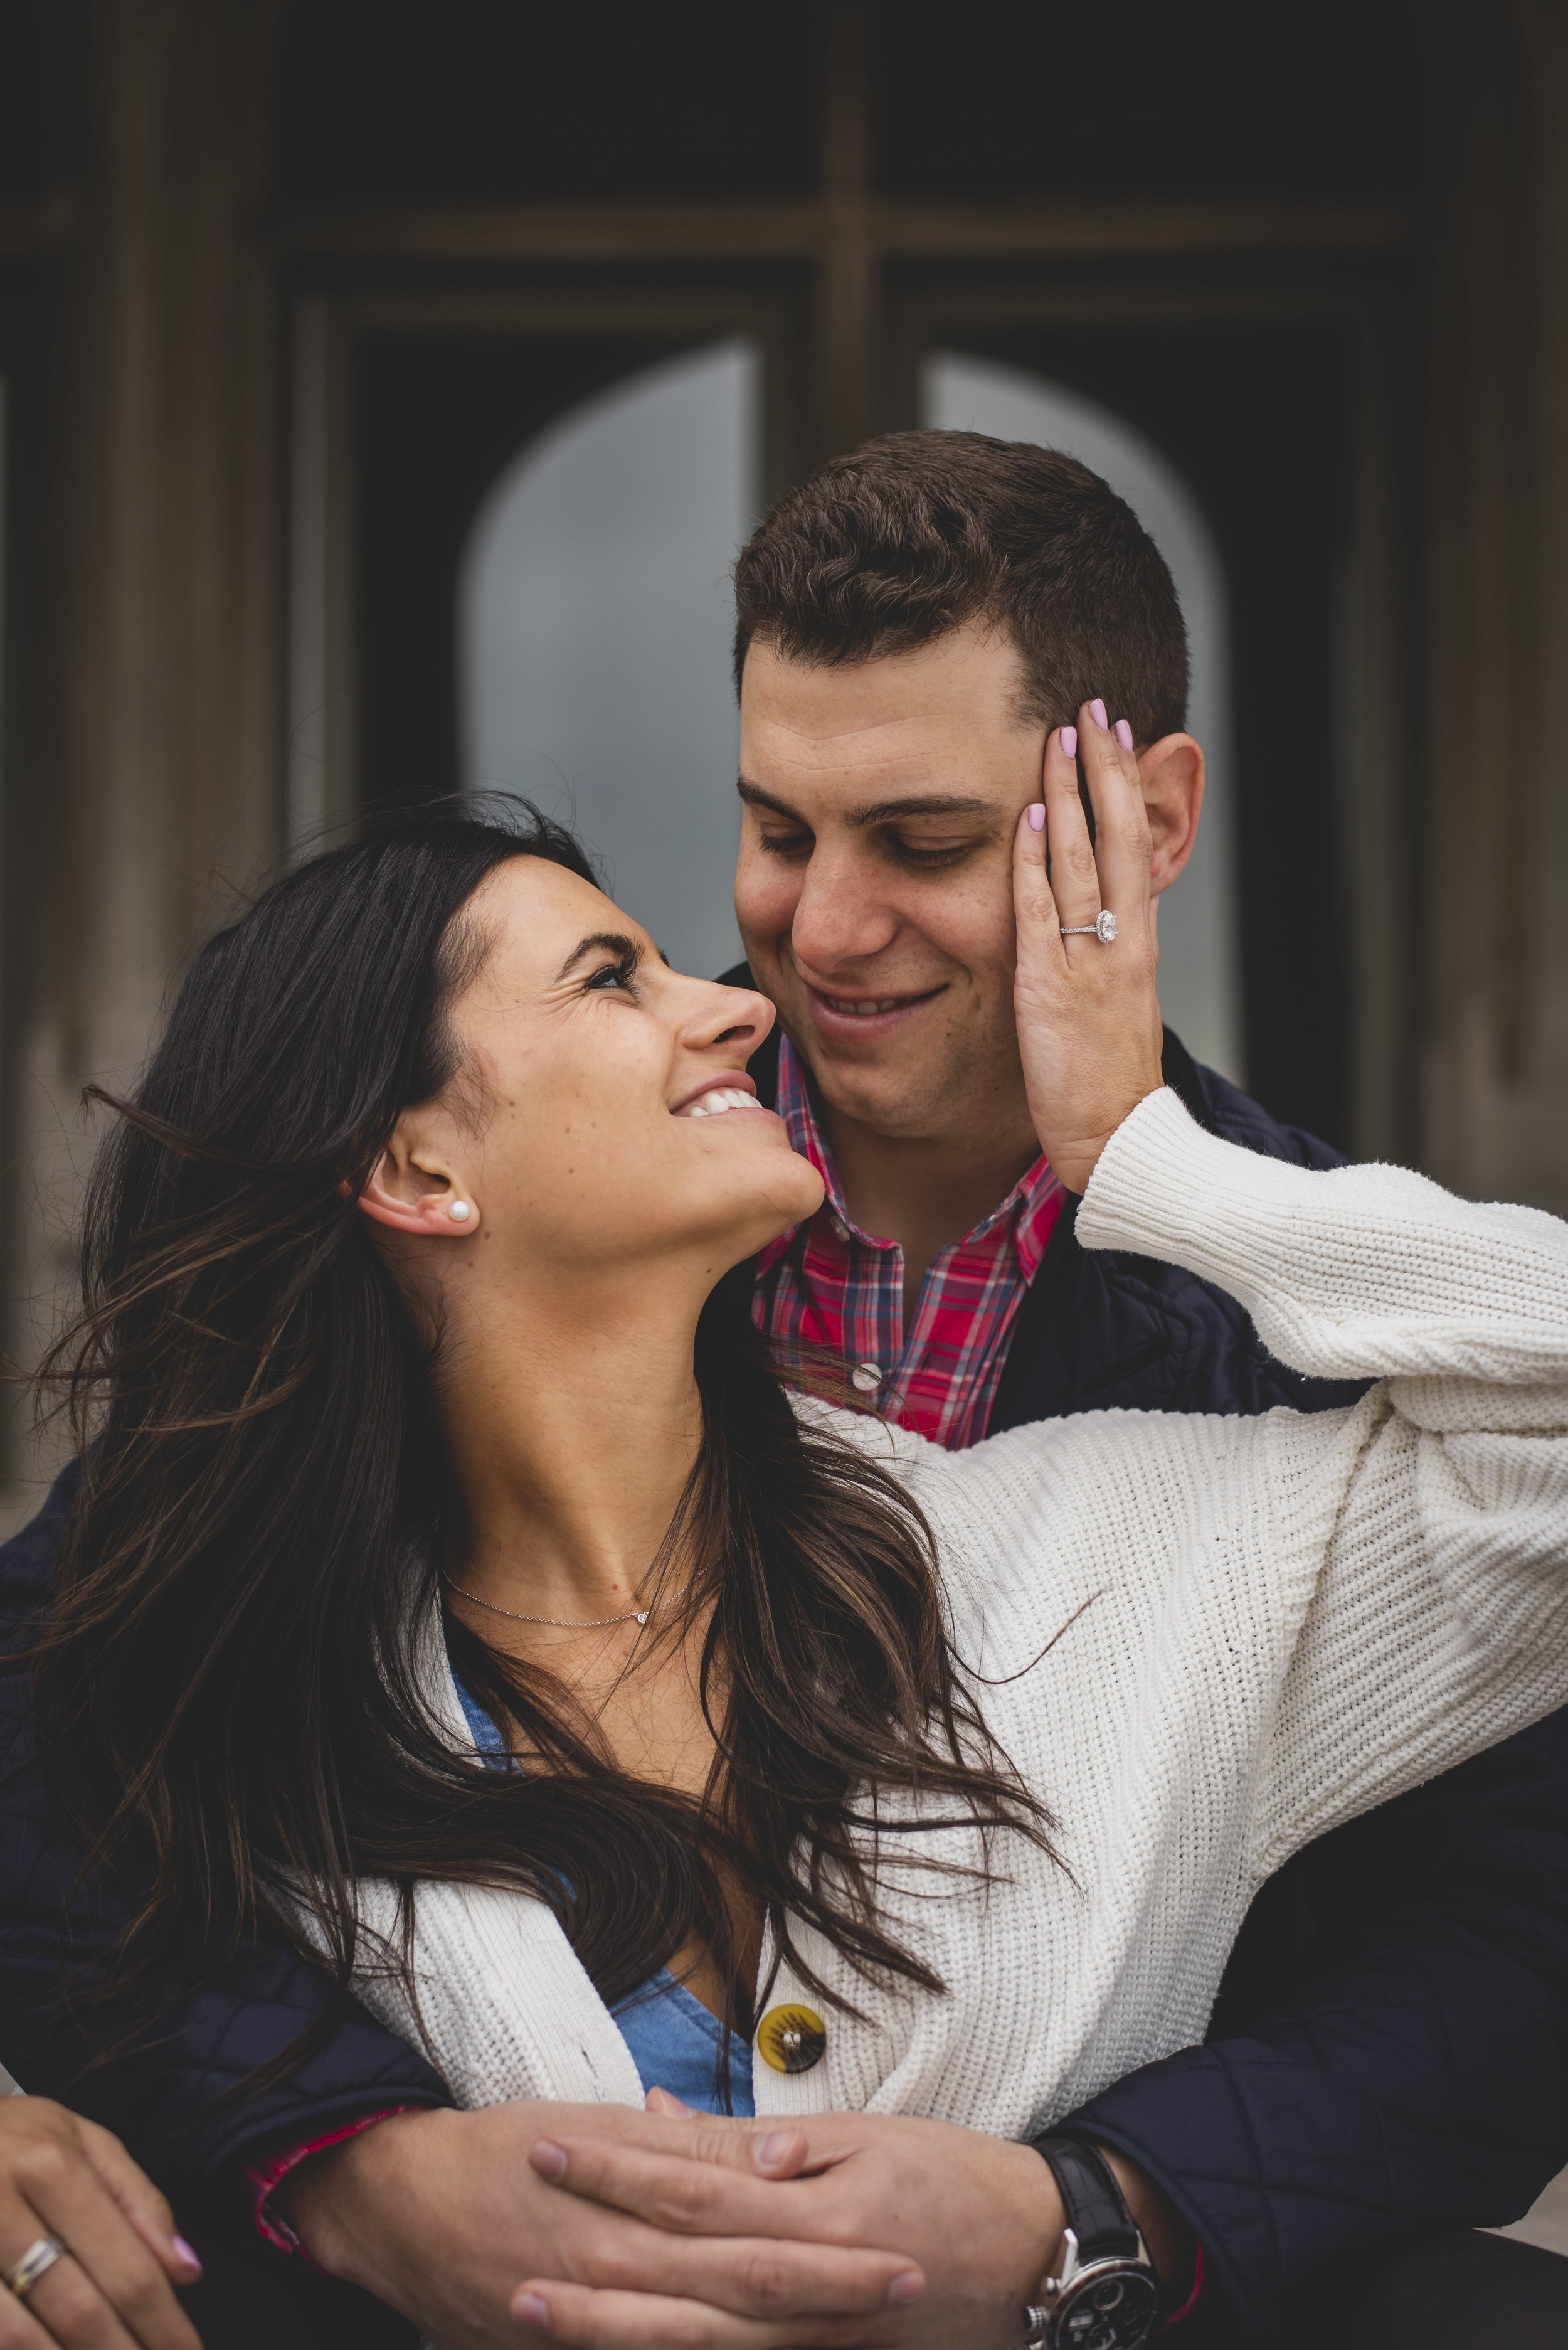 Engagement Photography Services - Castle Hill Lighthouse, Newport, RI - Future bride looking over her shoulder into her future husbands eyes as she sits in front of him.